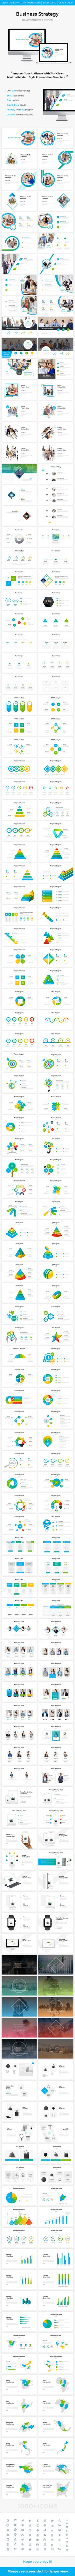 Business Strategy Powerpoint Template 2017 - PowerPoint Templates Presentation Templates